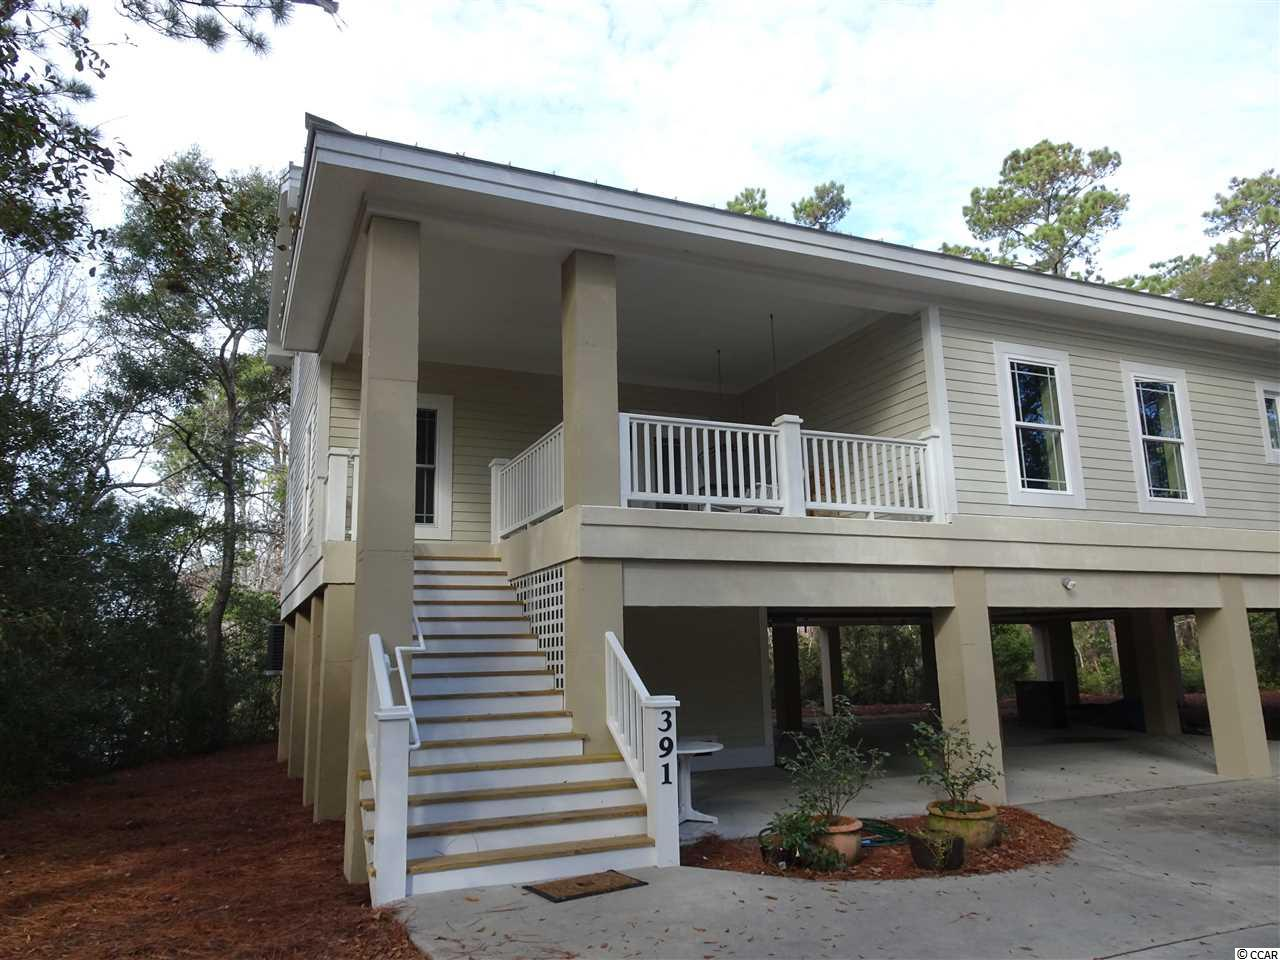 Waccamaw Trace house for sale in Pawleys Island, SC